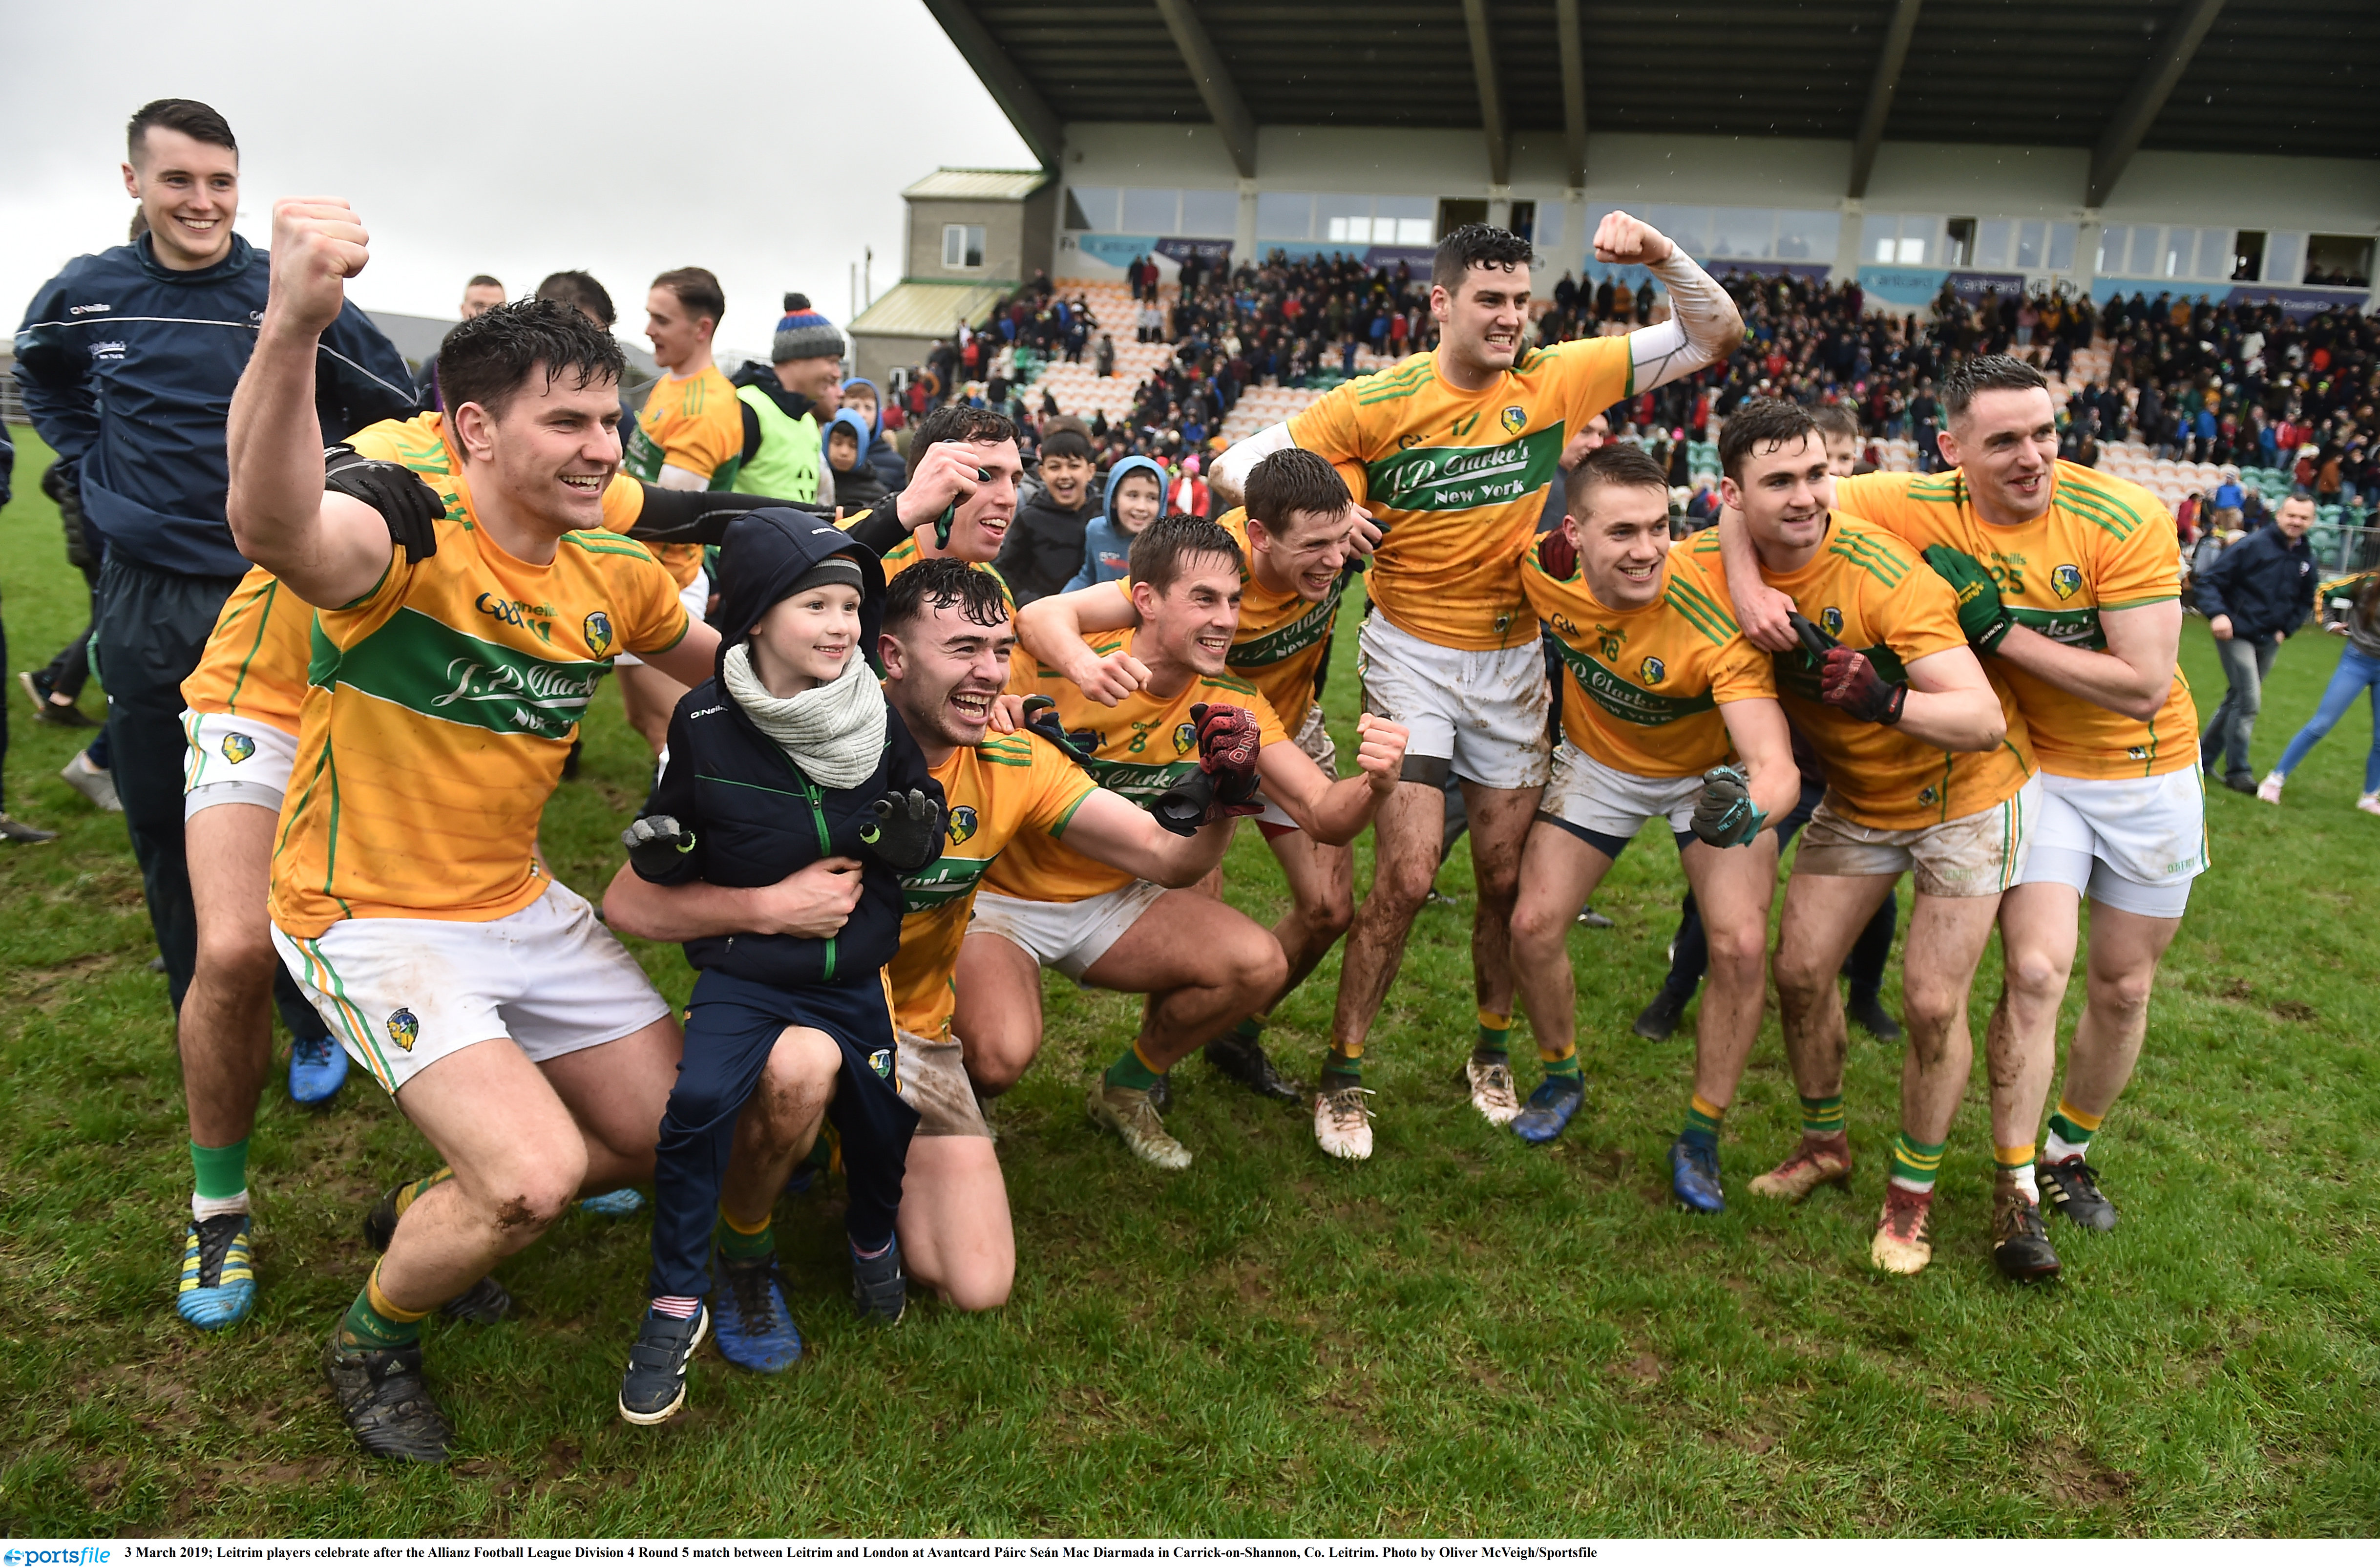 Roundup of Connacht Counties Allianz League Weekends